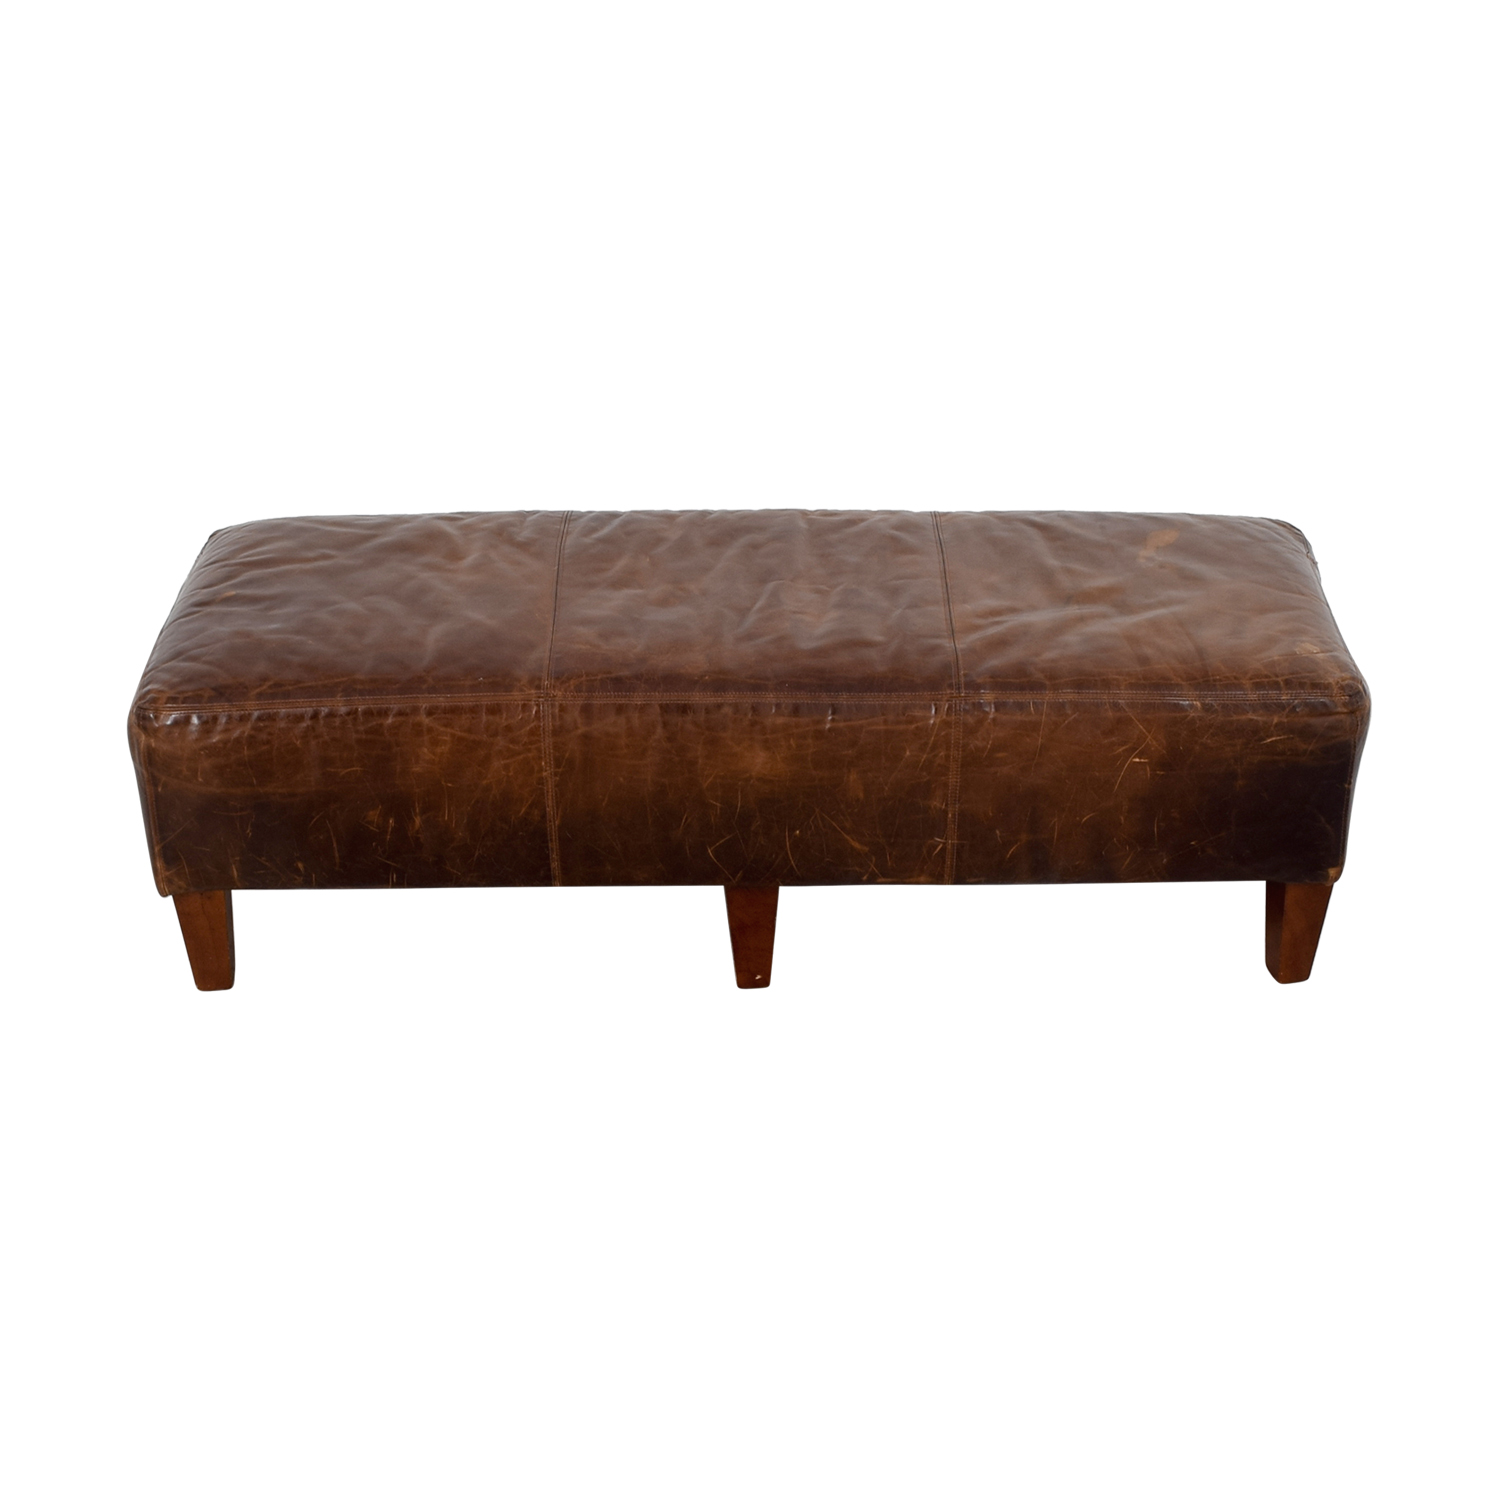 buy Pottery Barn Brown Leather Bench Pottery Barn Benches